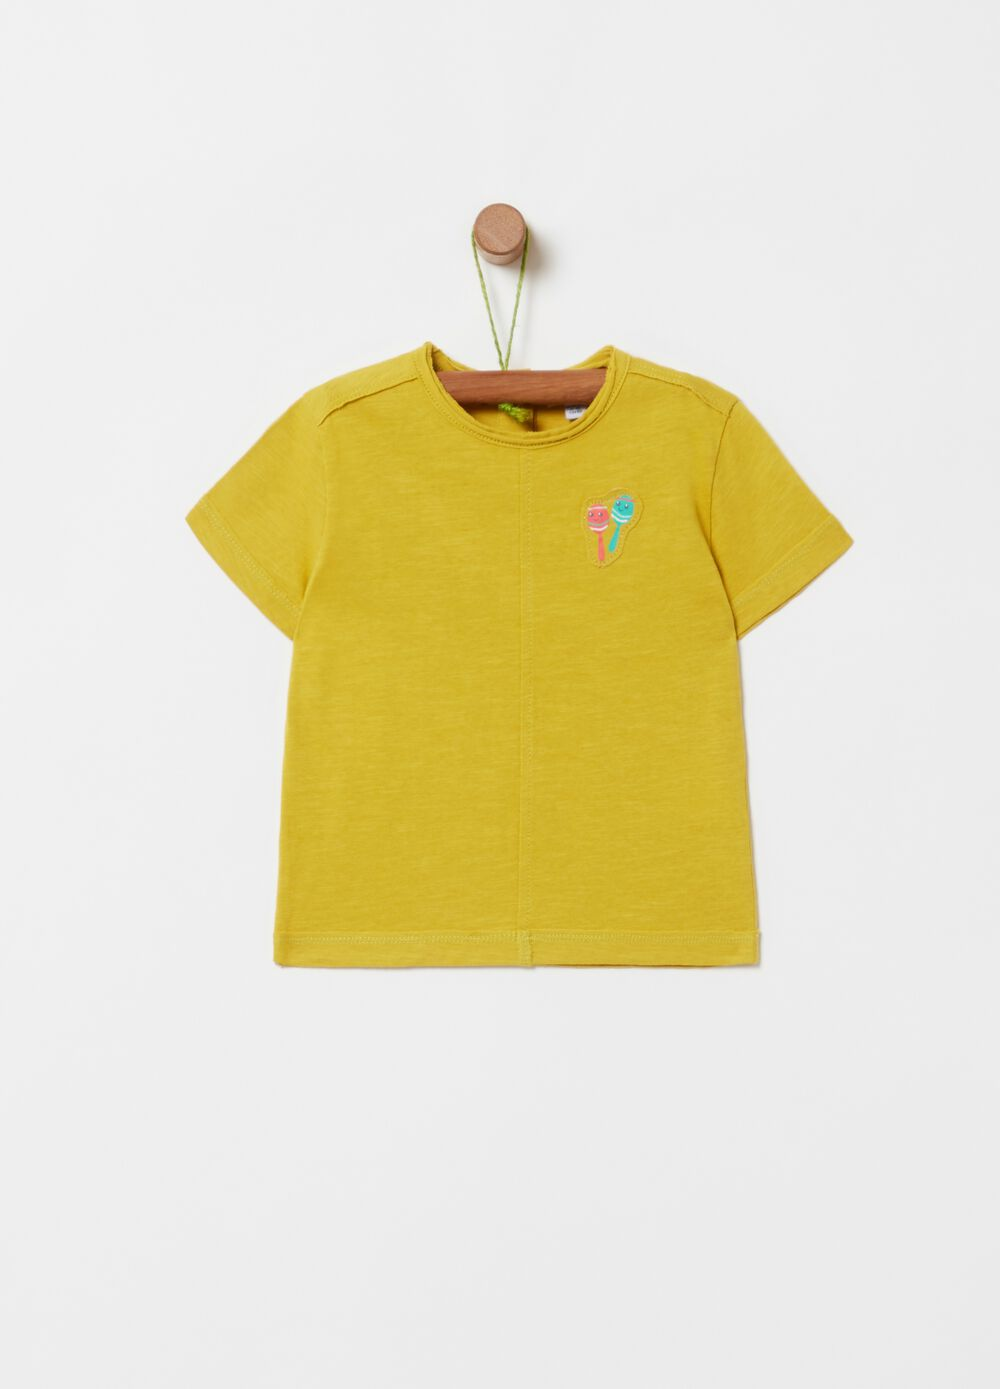 100% organic cotton T-shirt with maracas patch